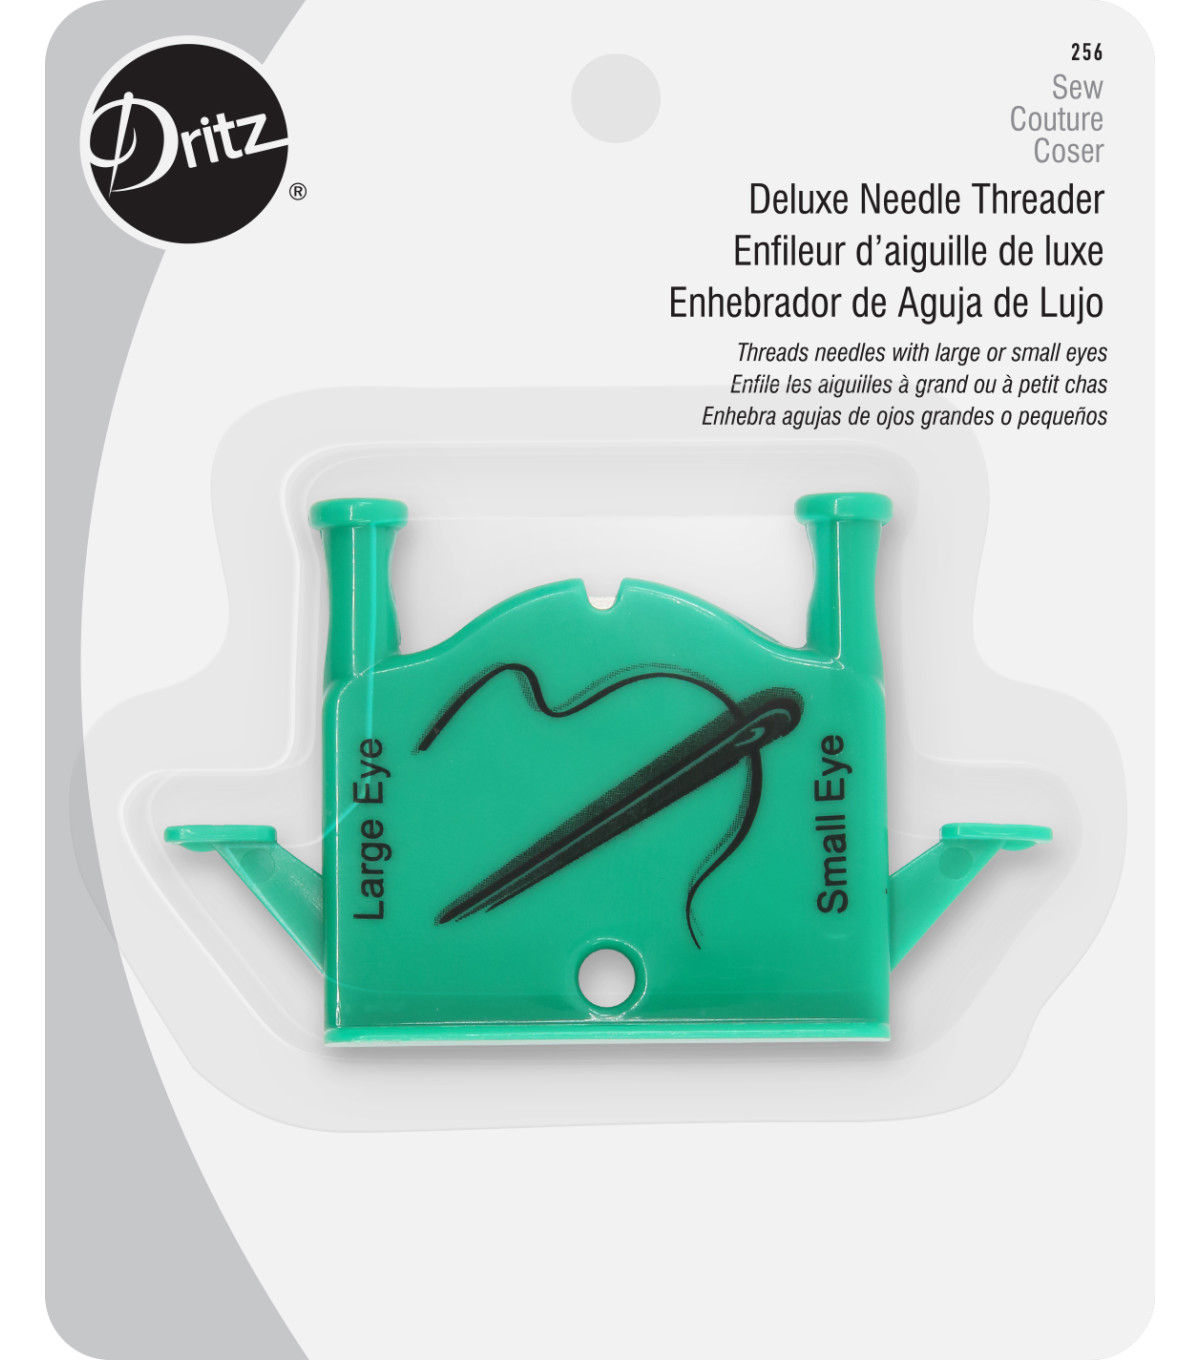 Dritz Deluxe Needle Threader